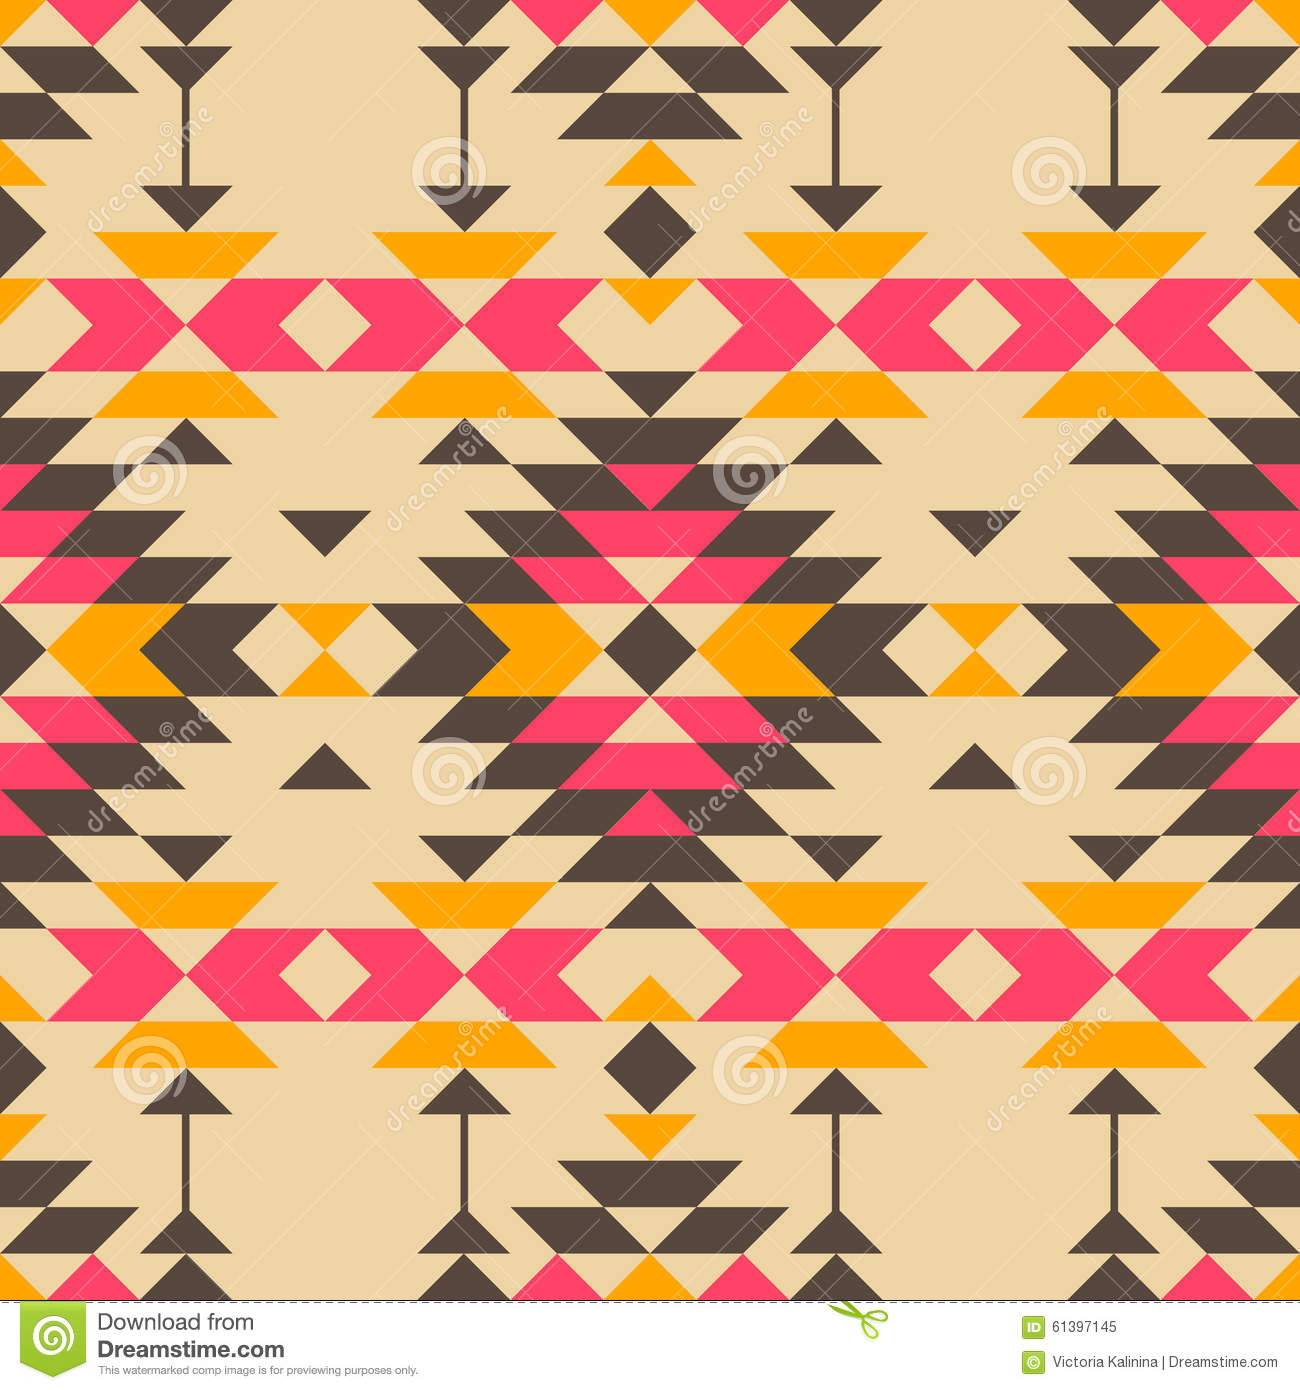 Native American Pattern Stock Vector - Image: 61397145